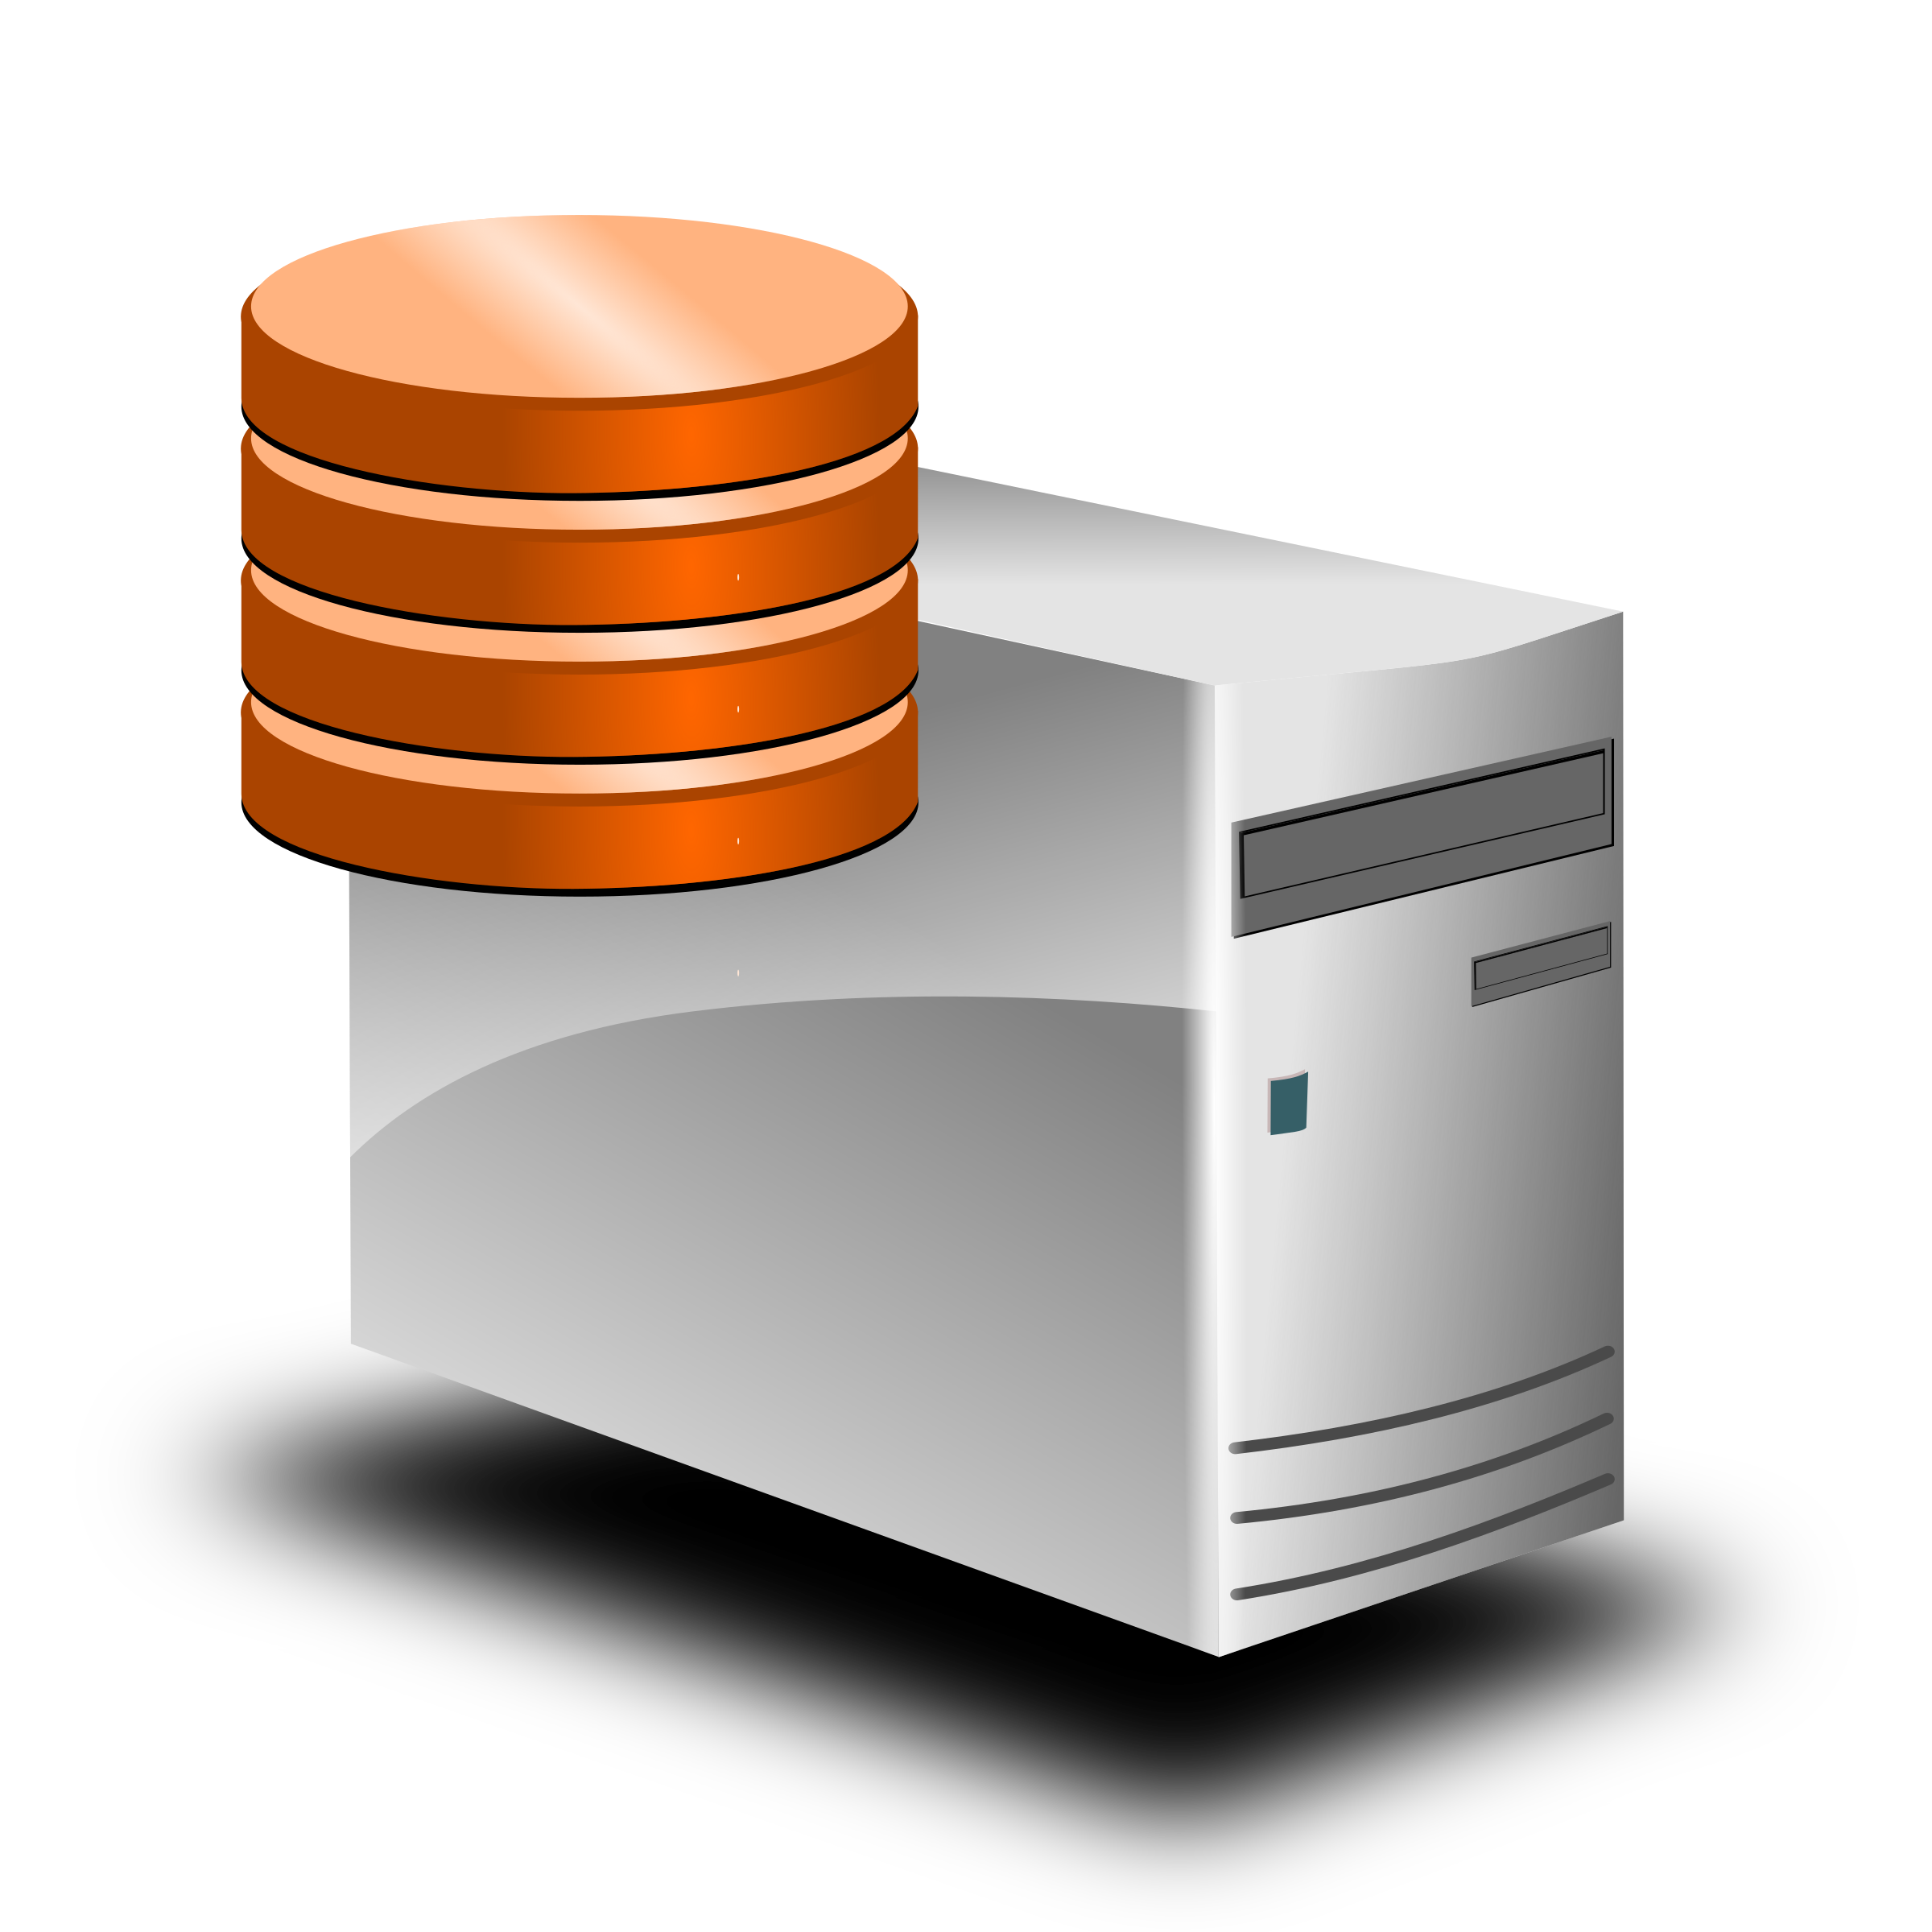 Database server clipart vector royalty free stock Free Database Server Cliparts, Download Free Clip Art, Free Clip Art ... vector royalty free stock